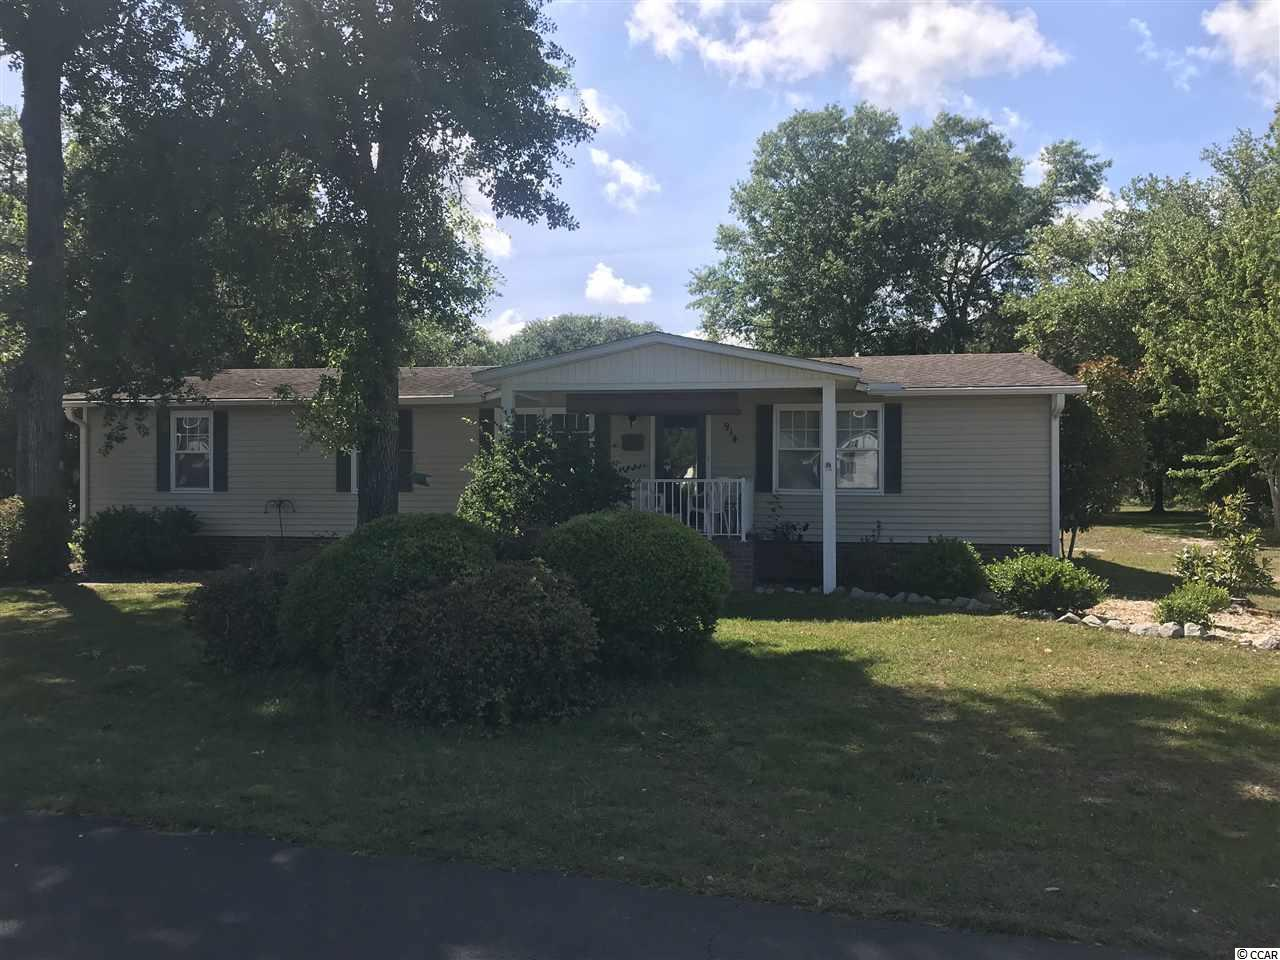 Charming home in quiet 55 and over Community of Live Oak. Home features large Carolina Room with 1 car garage. This neighborhood features a large pool with Club House.